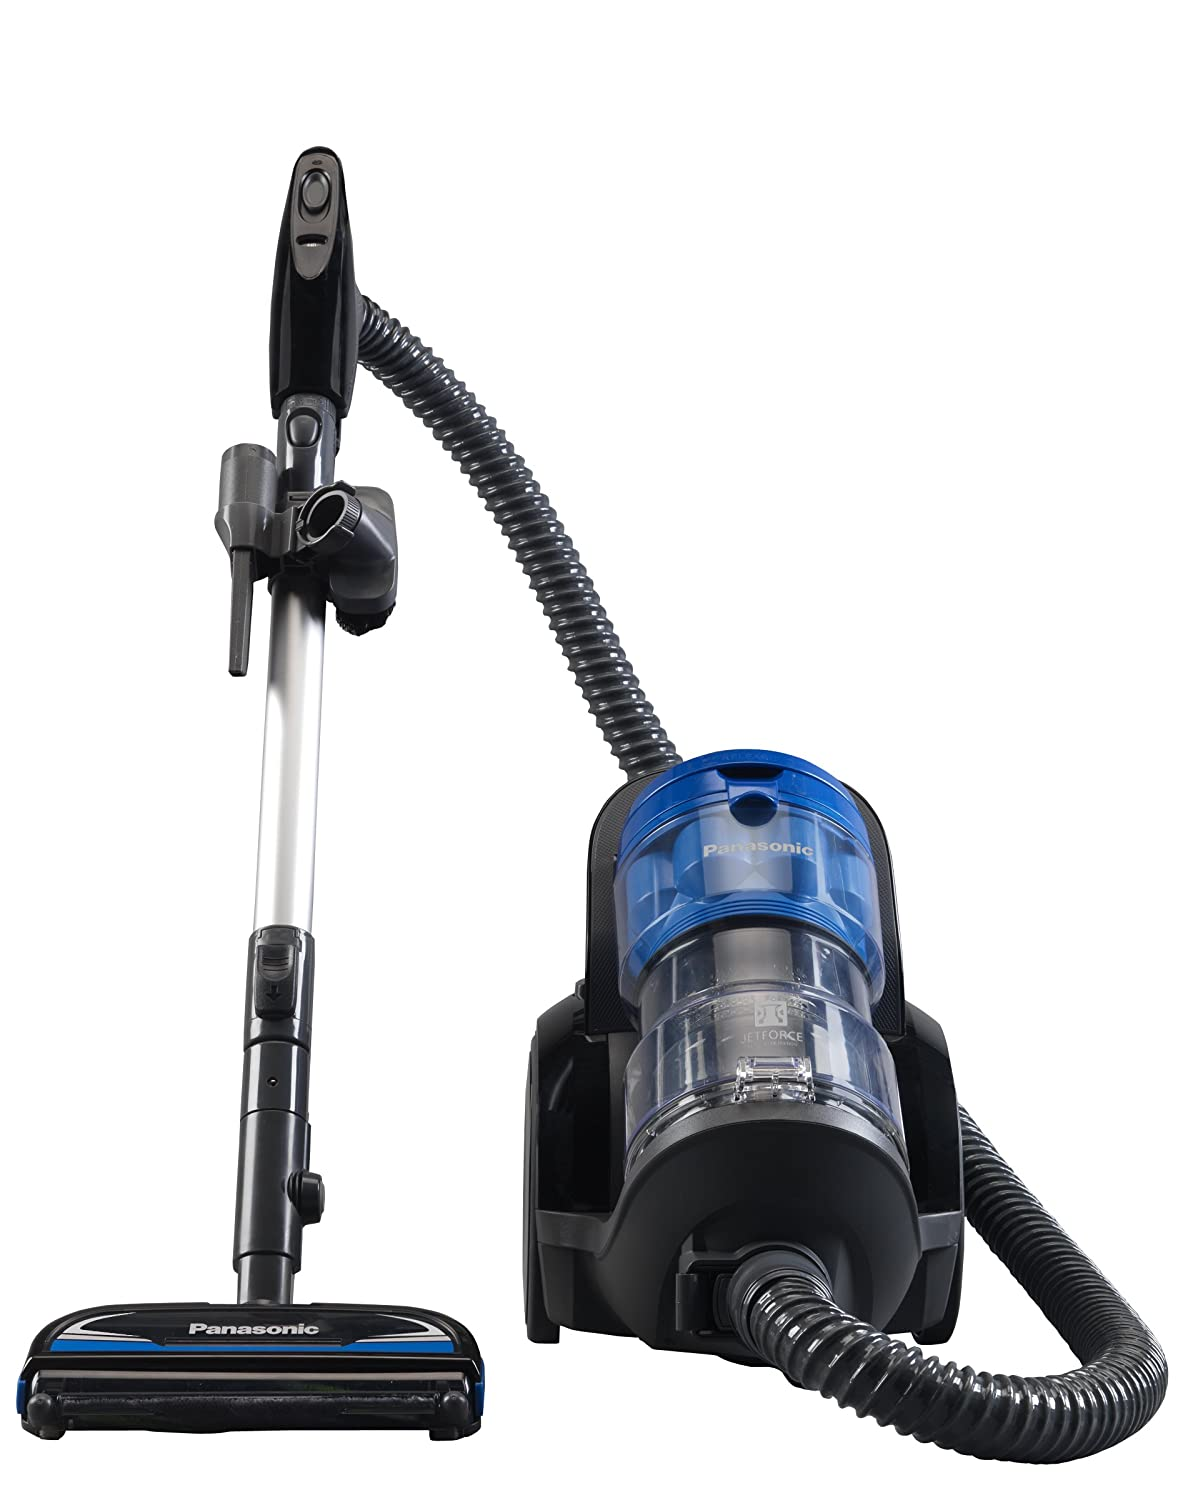 Amazon.com: Panasonic MC-CL943 JETFORCE Mult-Surface Bagless Canister  Vacuum Cleaner - Corded: Home & Kitchen